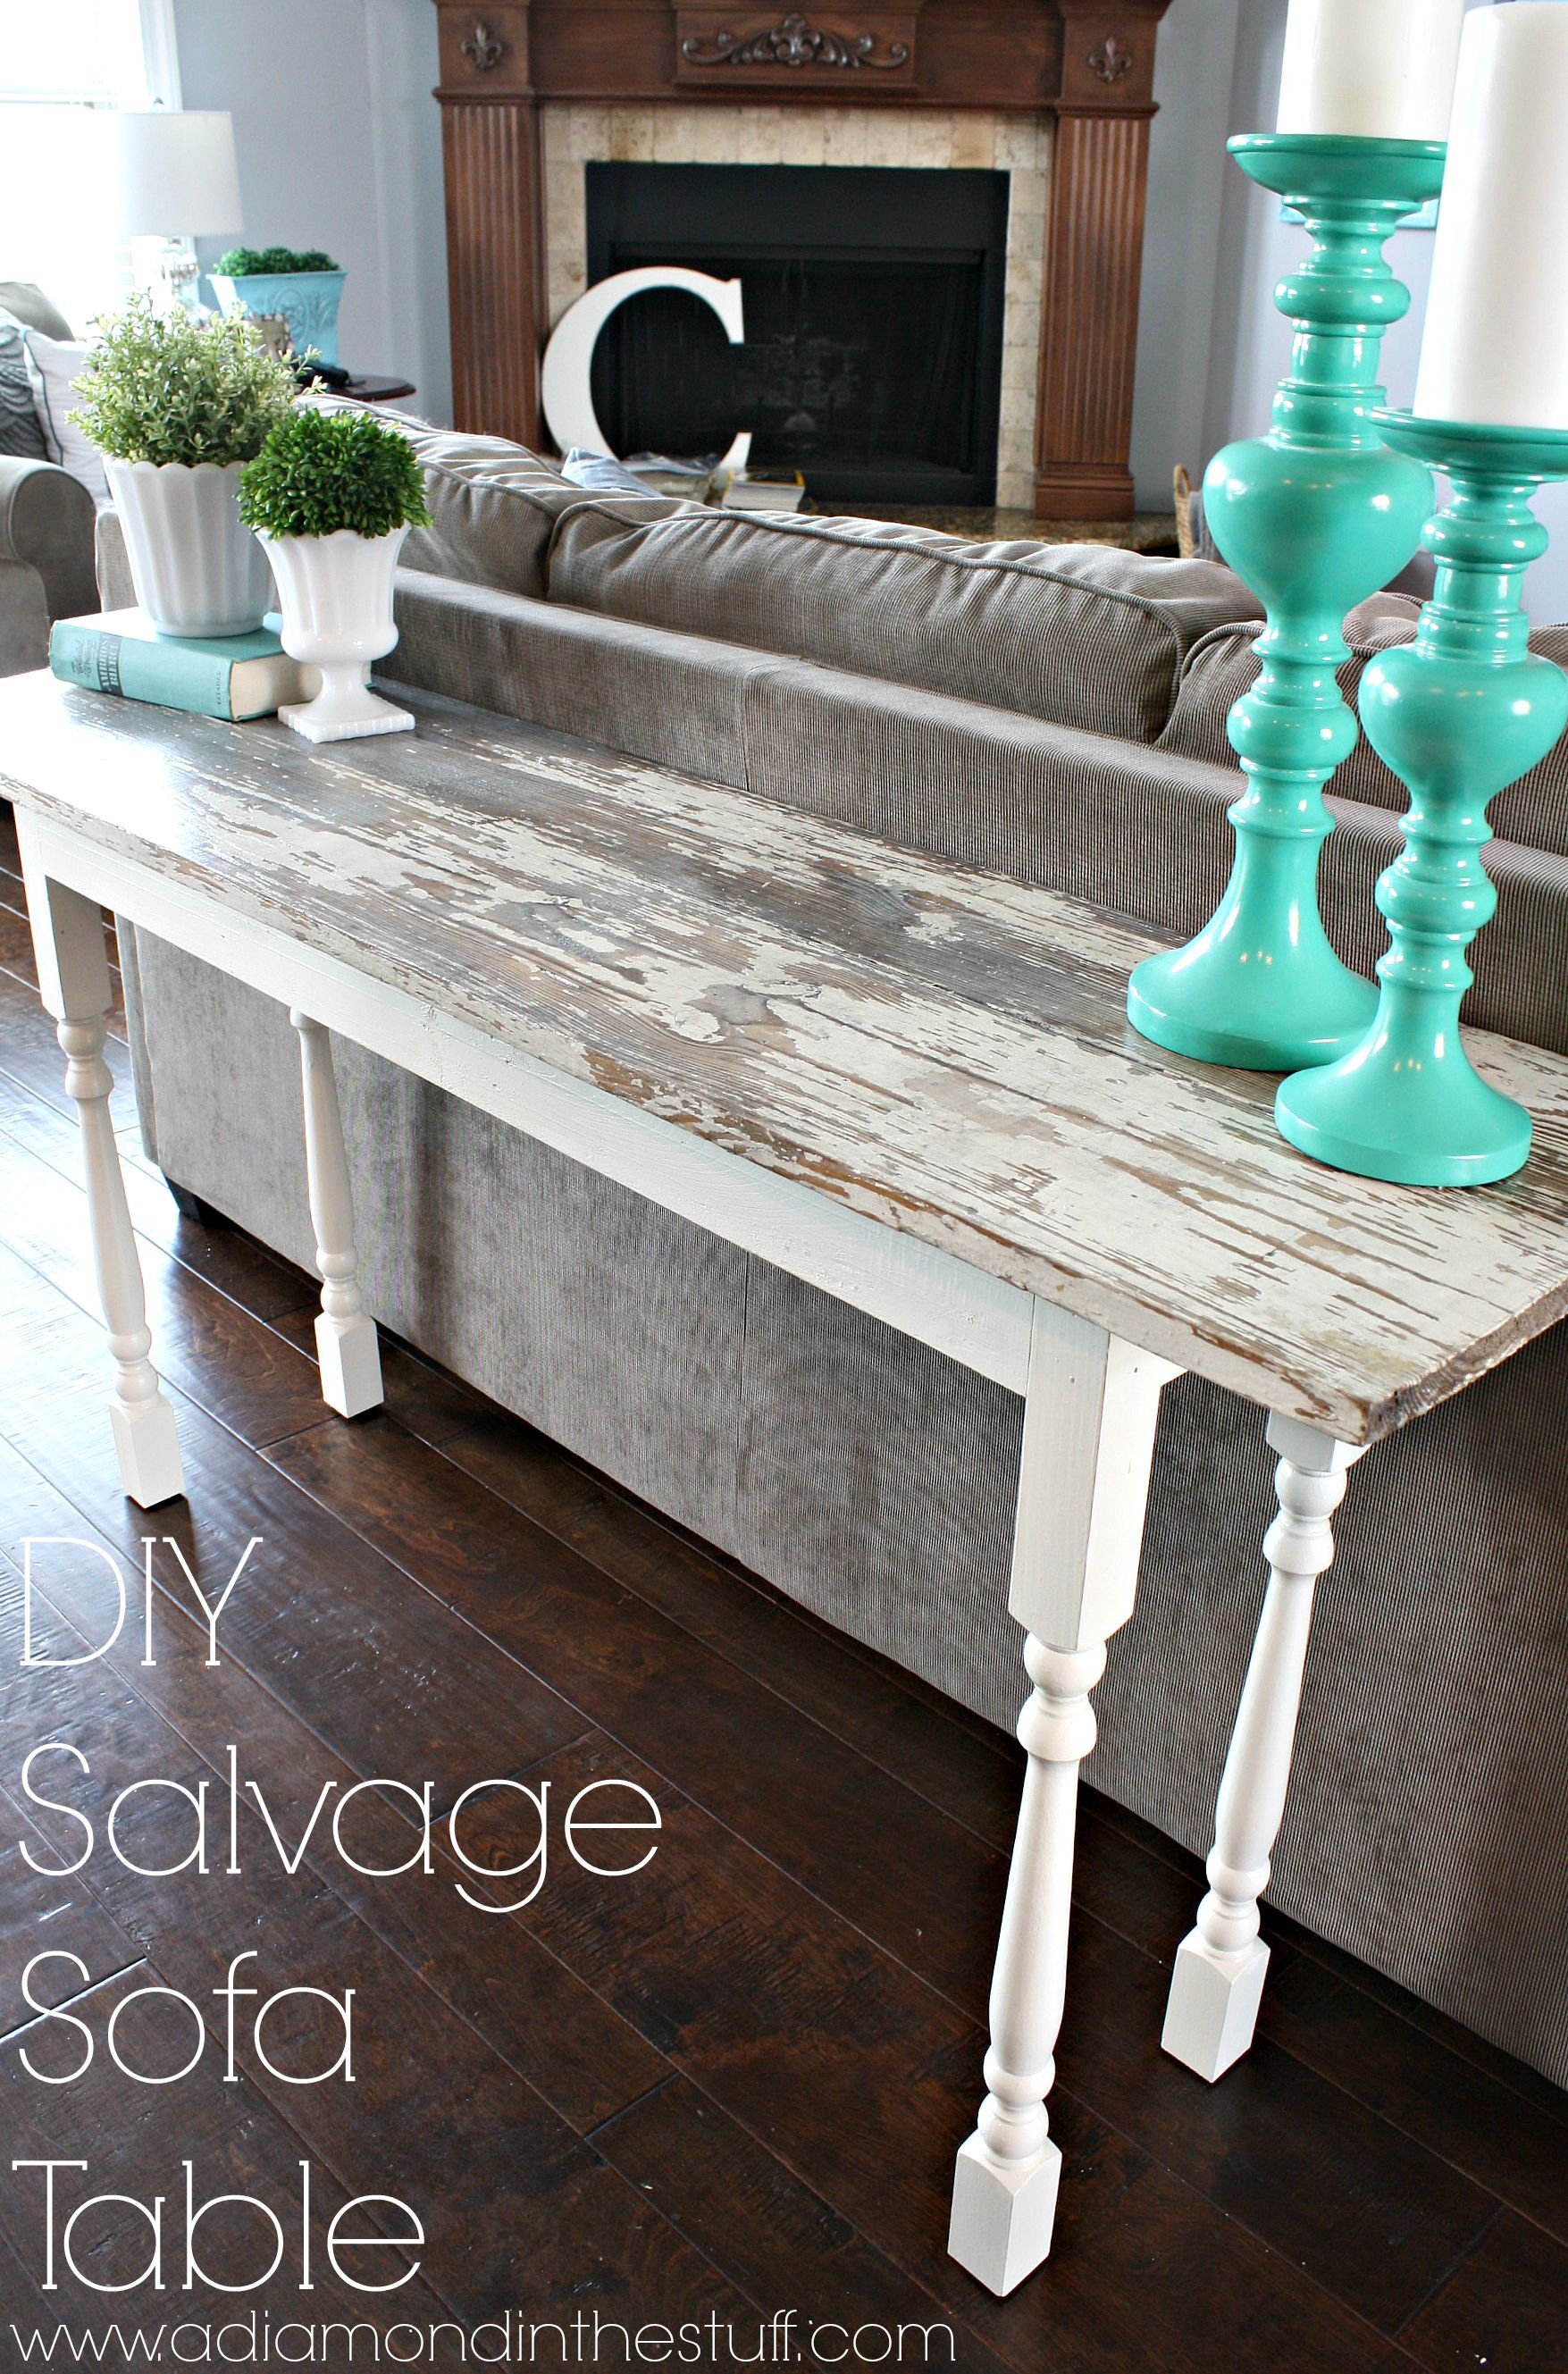 How to make a sofa table from 1 x 6 lumber - Diy Salvage Sofa Table A Diamond In The Stuff